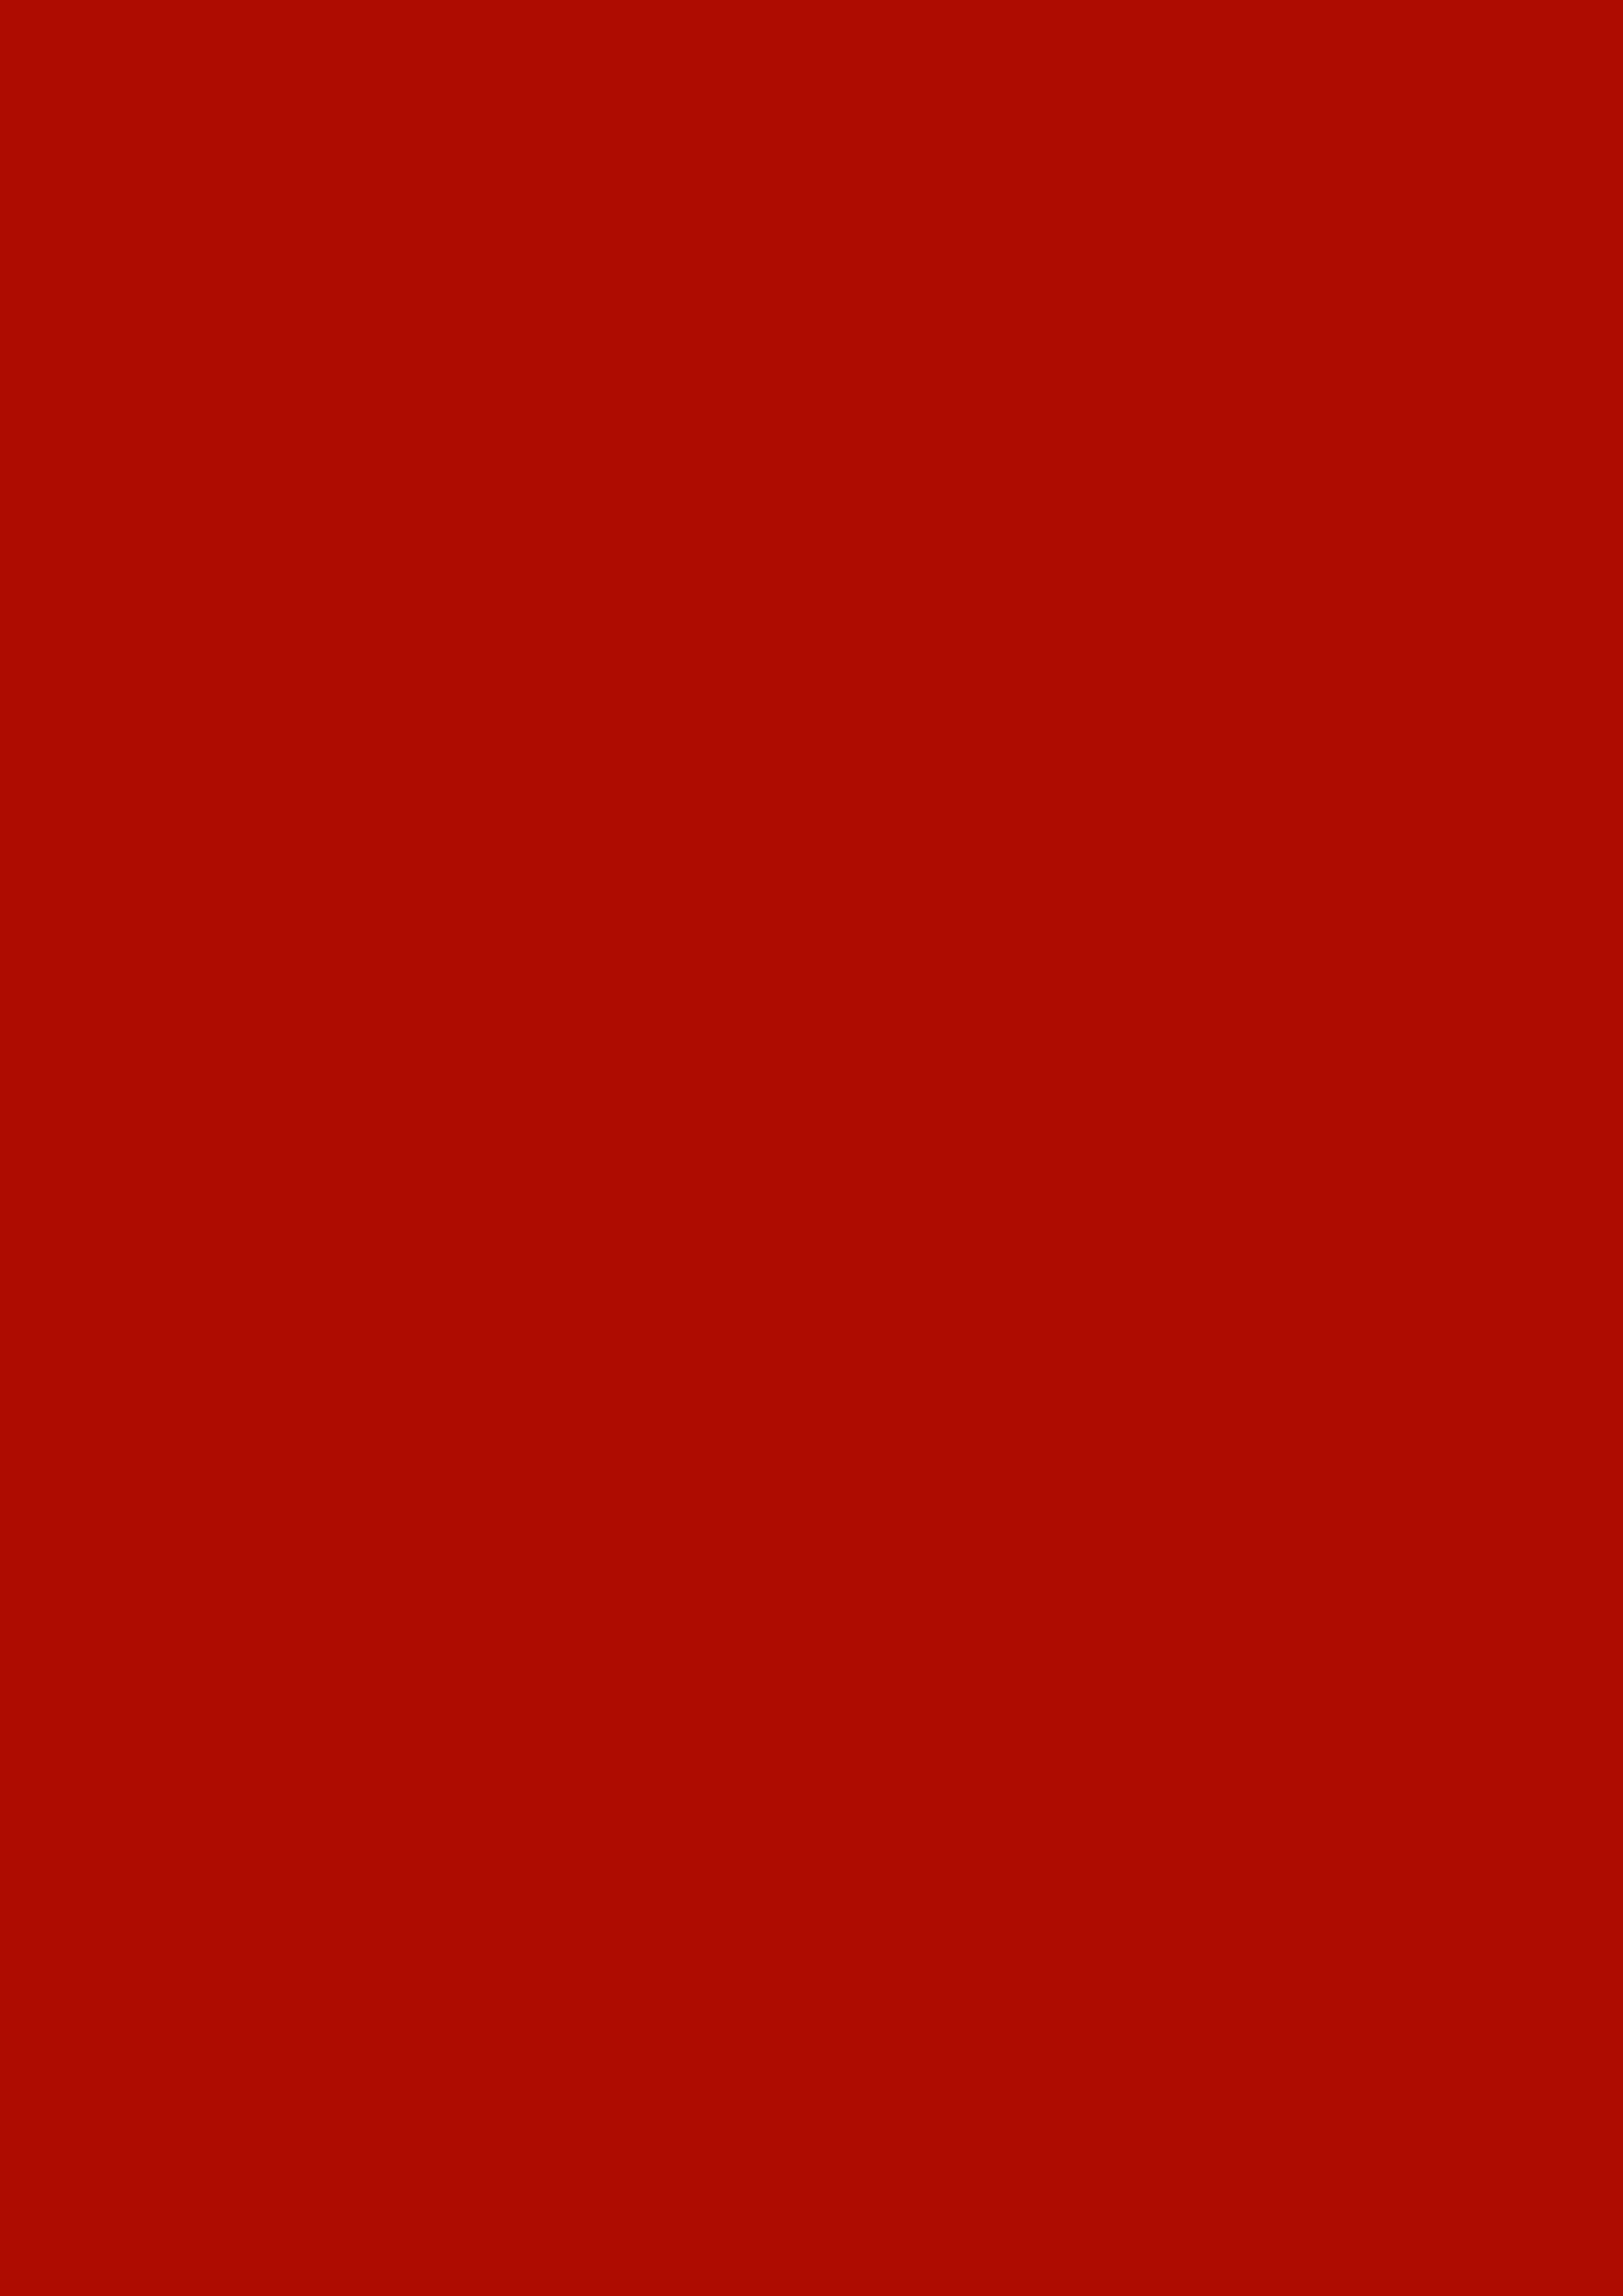 2480x3508 Mordant Red 19 Solid Color Background